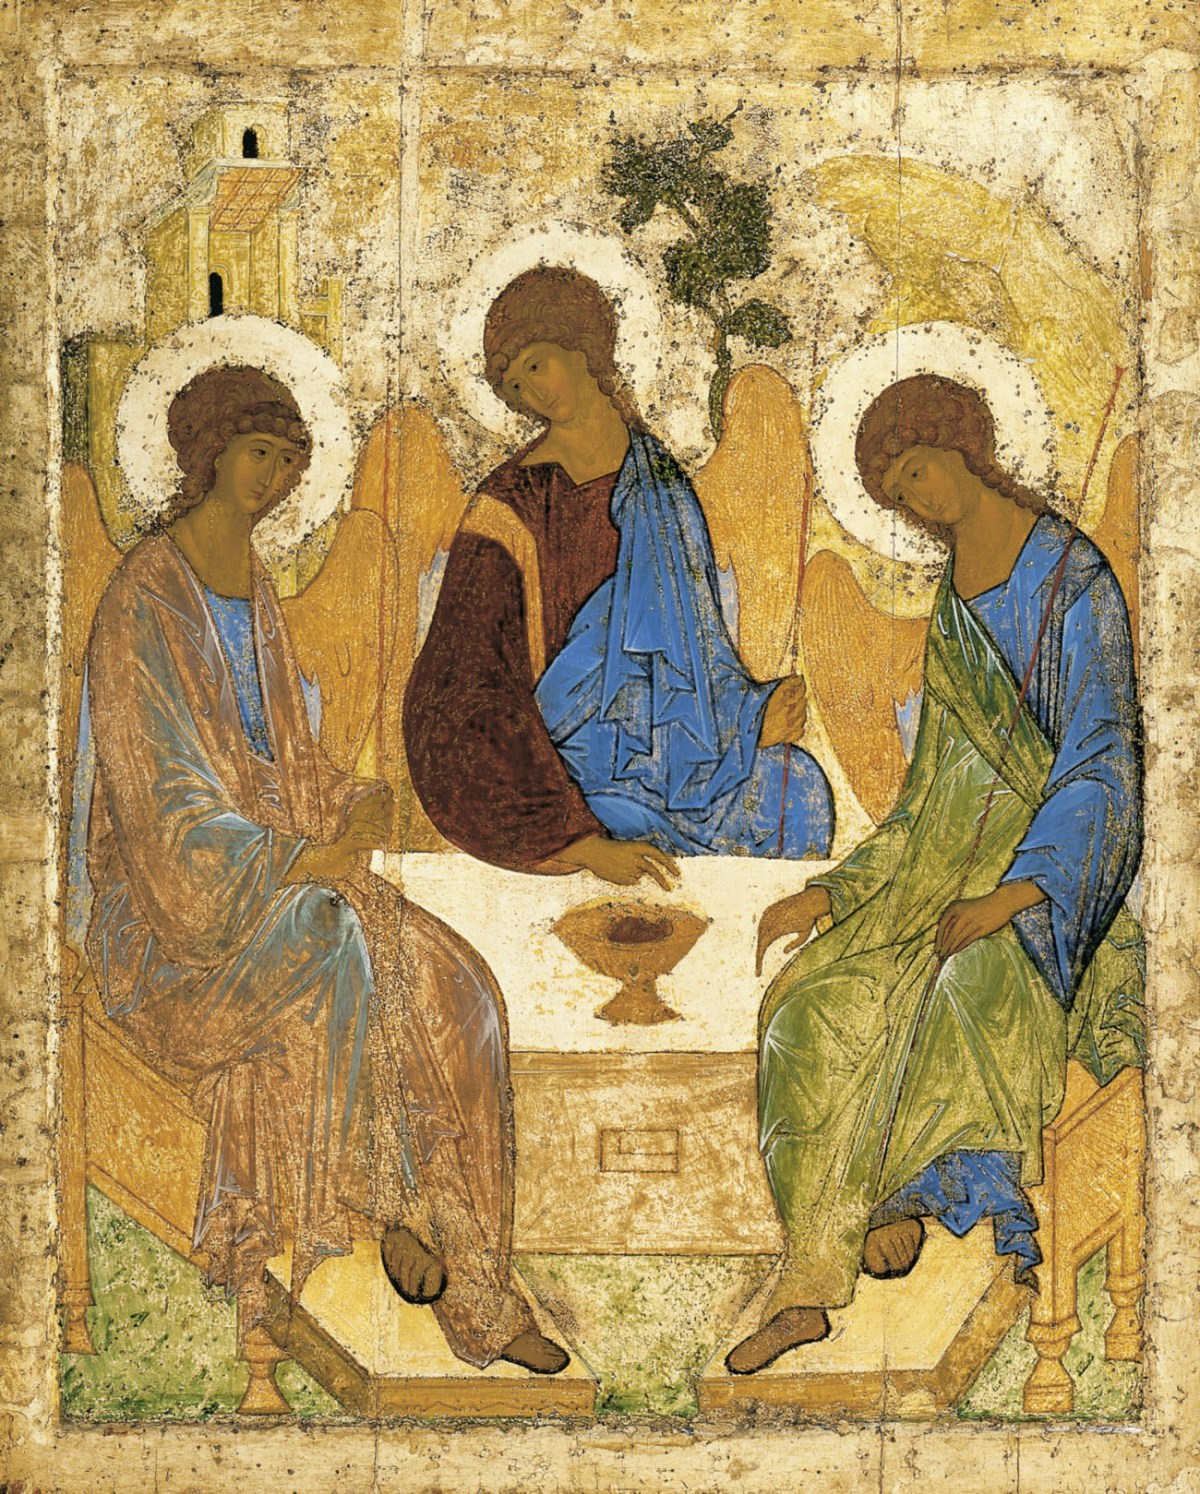 The Holy Trinity: What Is It? (Why) Is It Important